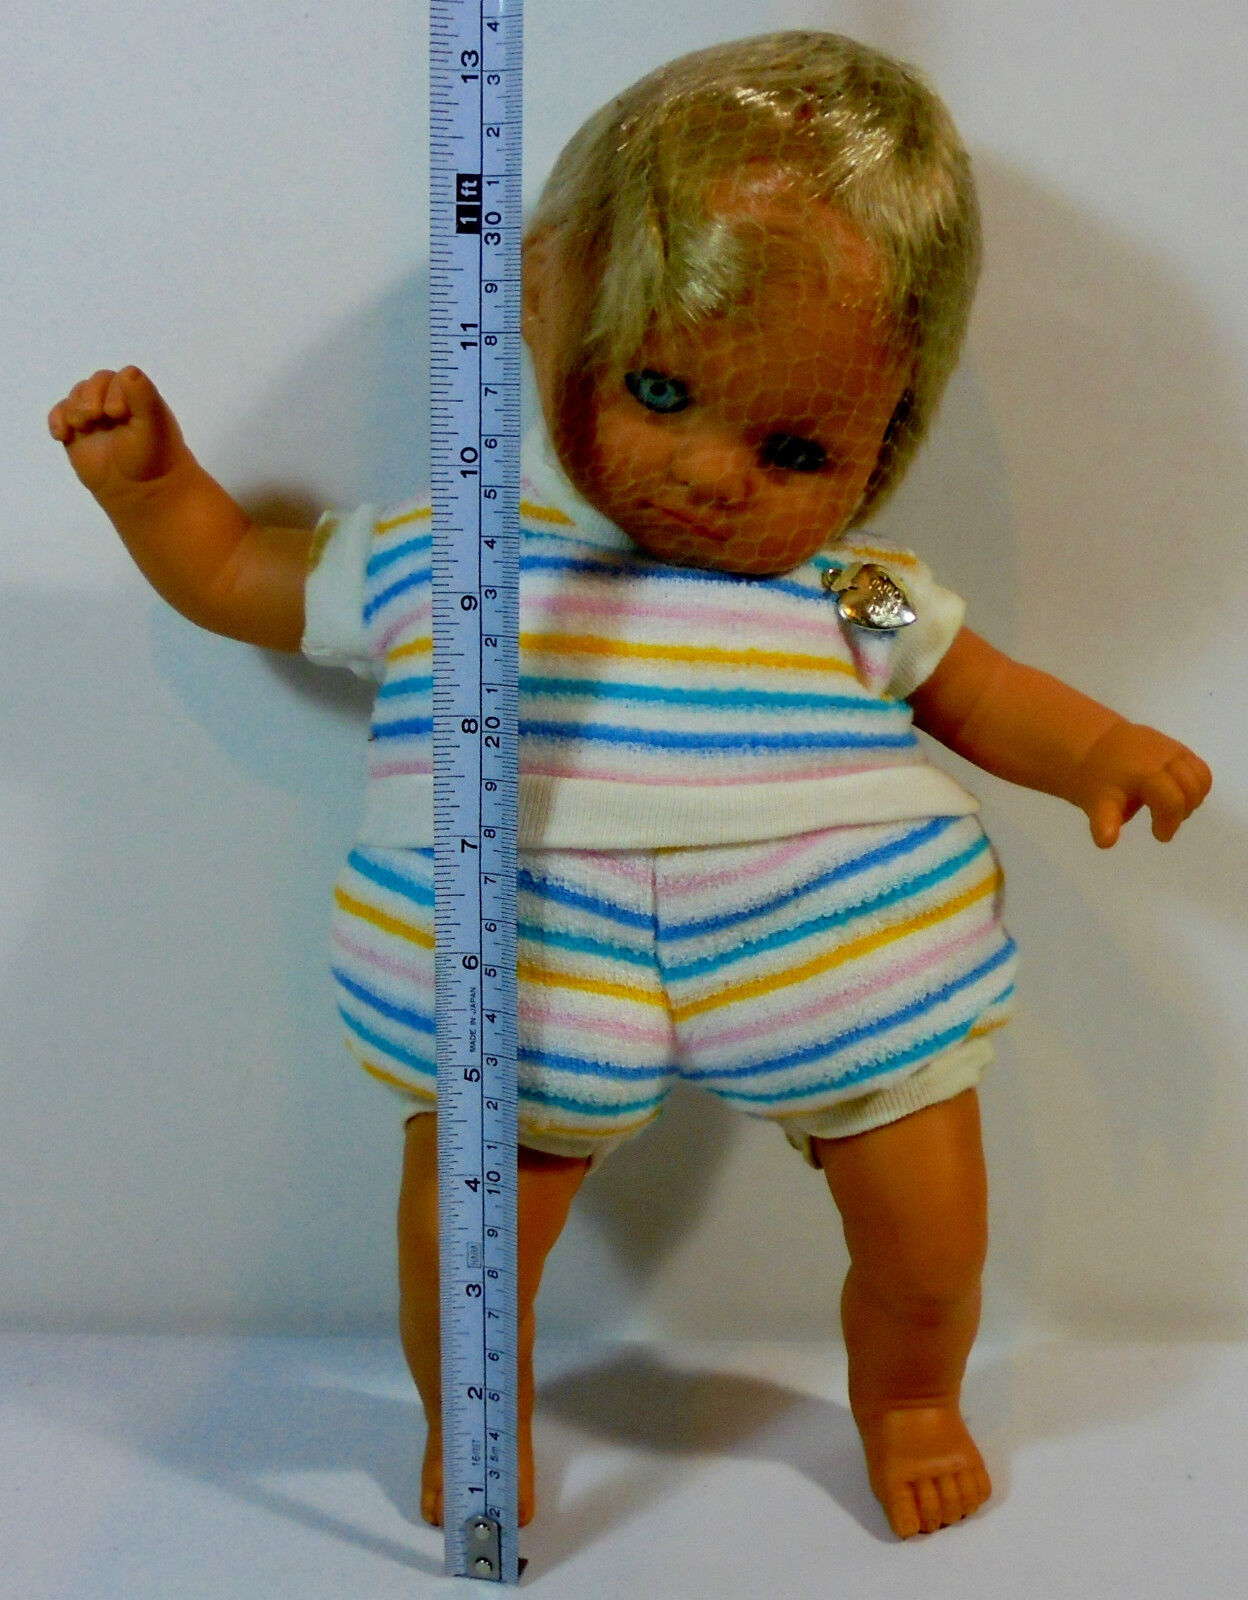 EL GRECO VTG 80's GREEK 13'' BABY DOLL TO TO TO MORAKI MOY UNUSED - NO BOX a132ea